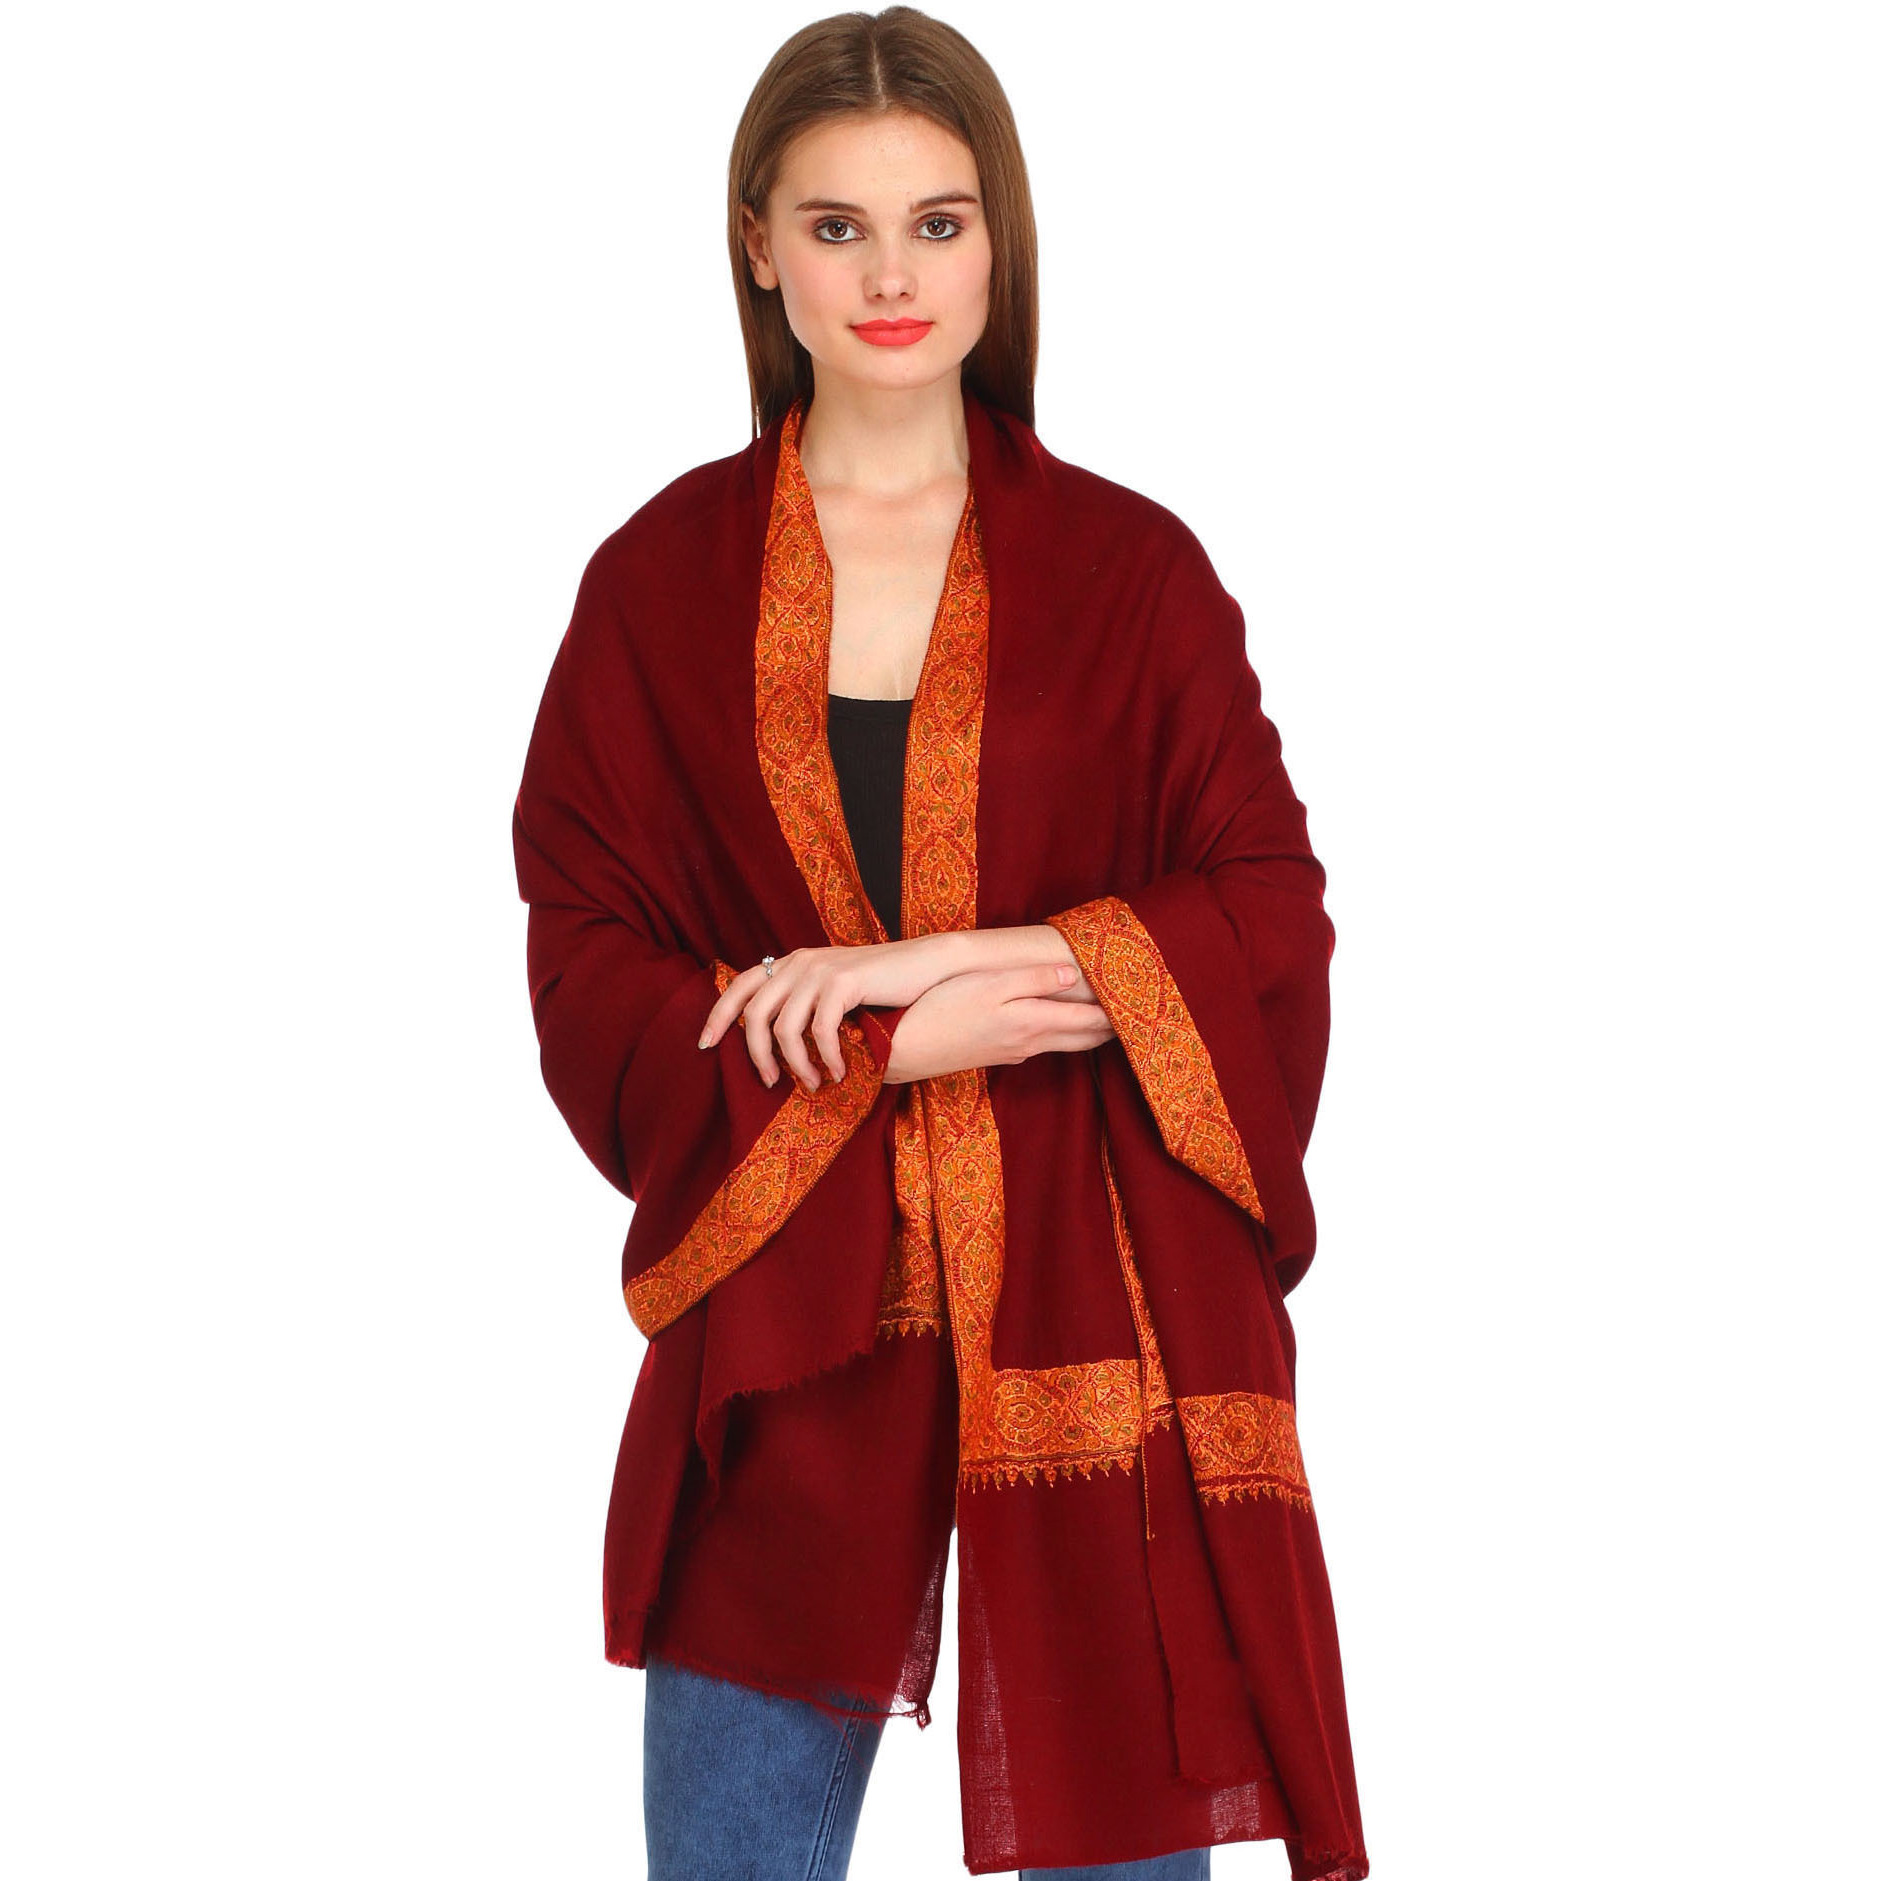 Cordovan-Red Plain Pure Pashmina Shawl from Kashmir with Needle Hand-Embroidery on Border